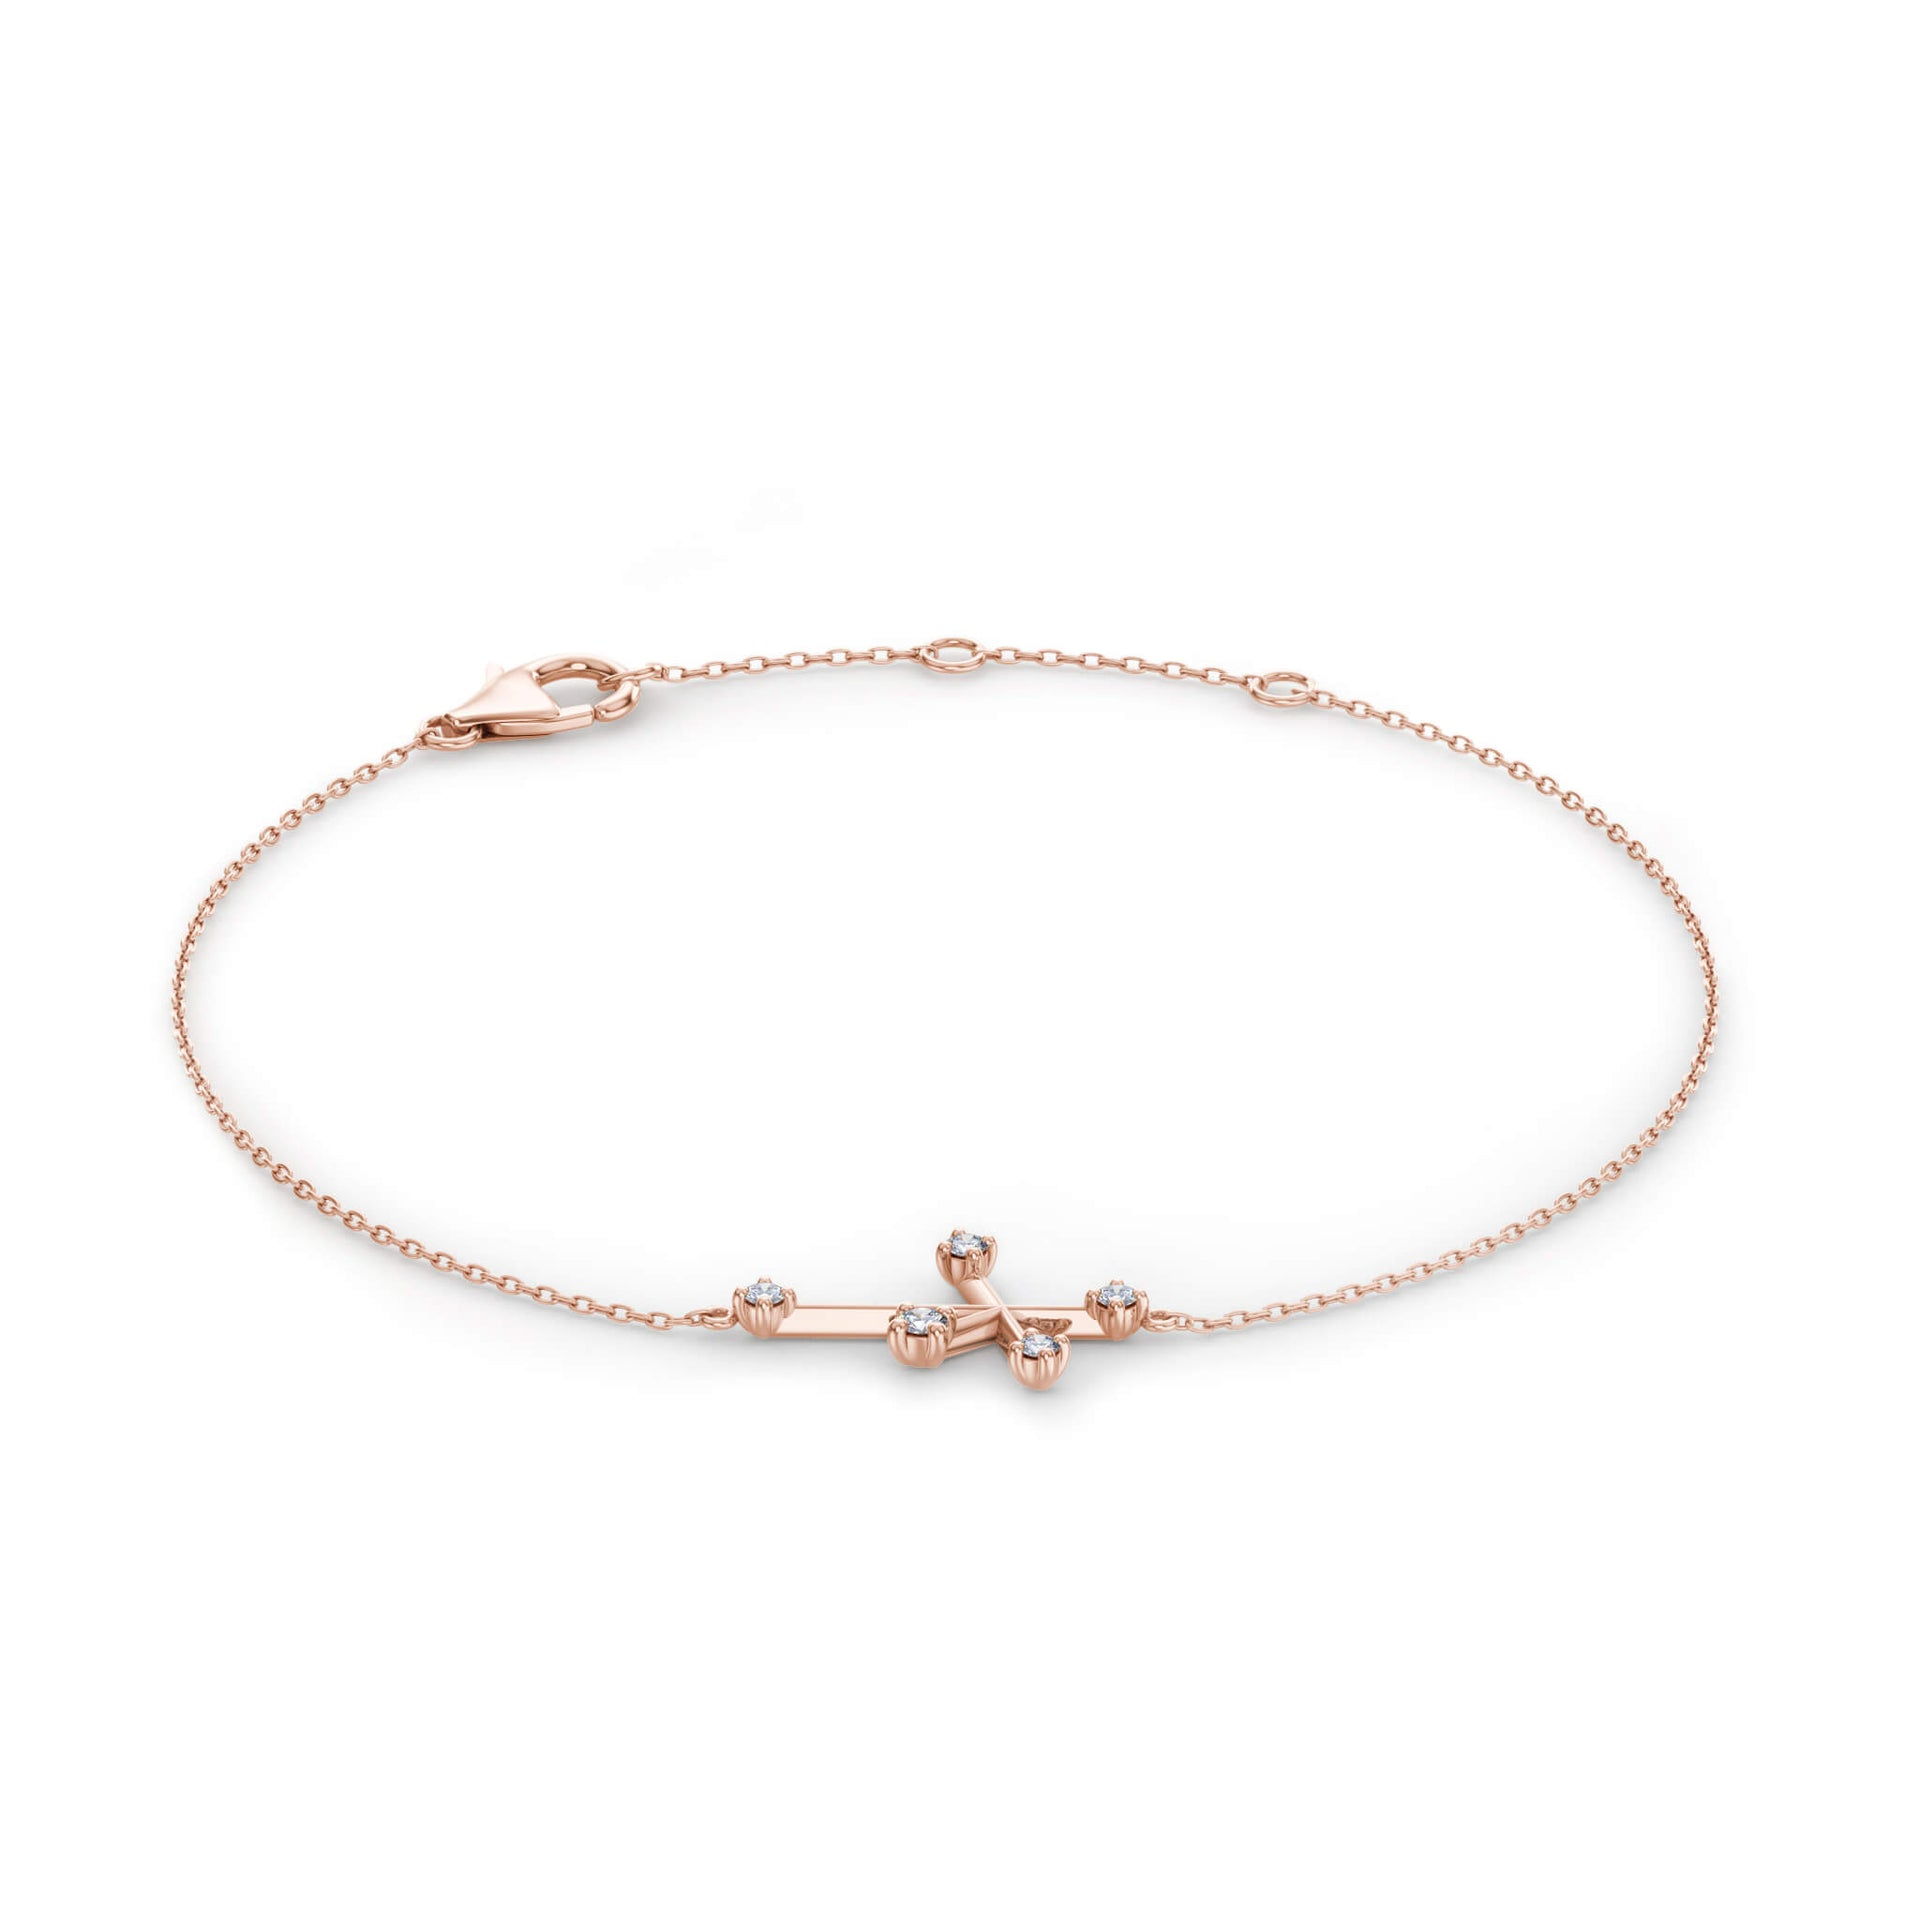 Southern Cross Diamond Bracelet in 14K Rose Gold 3D View